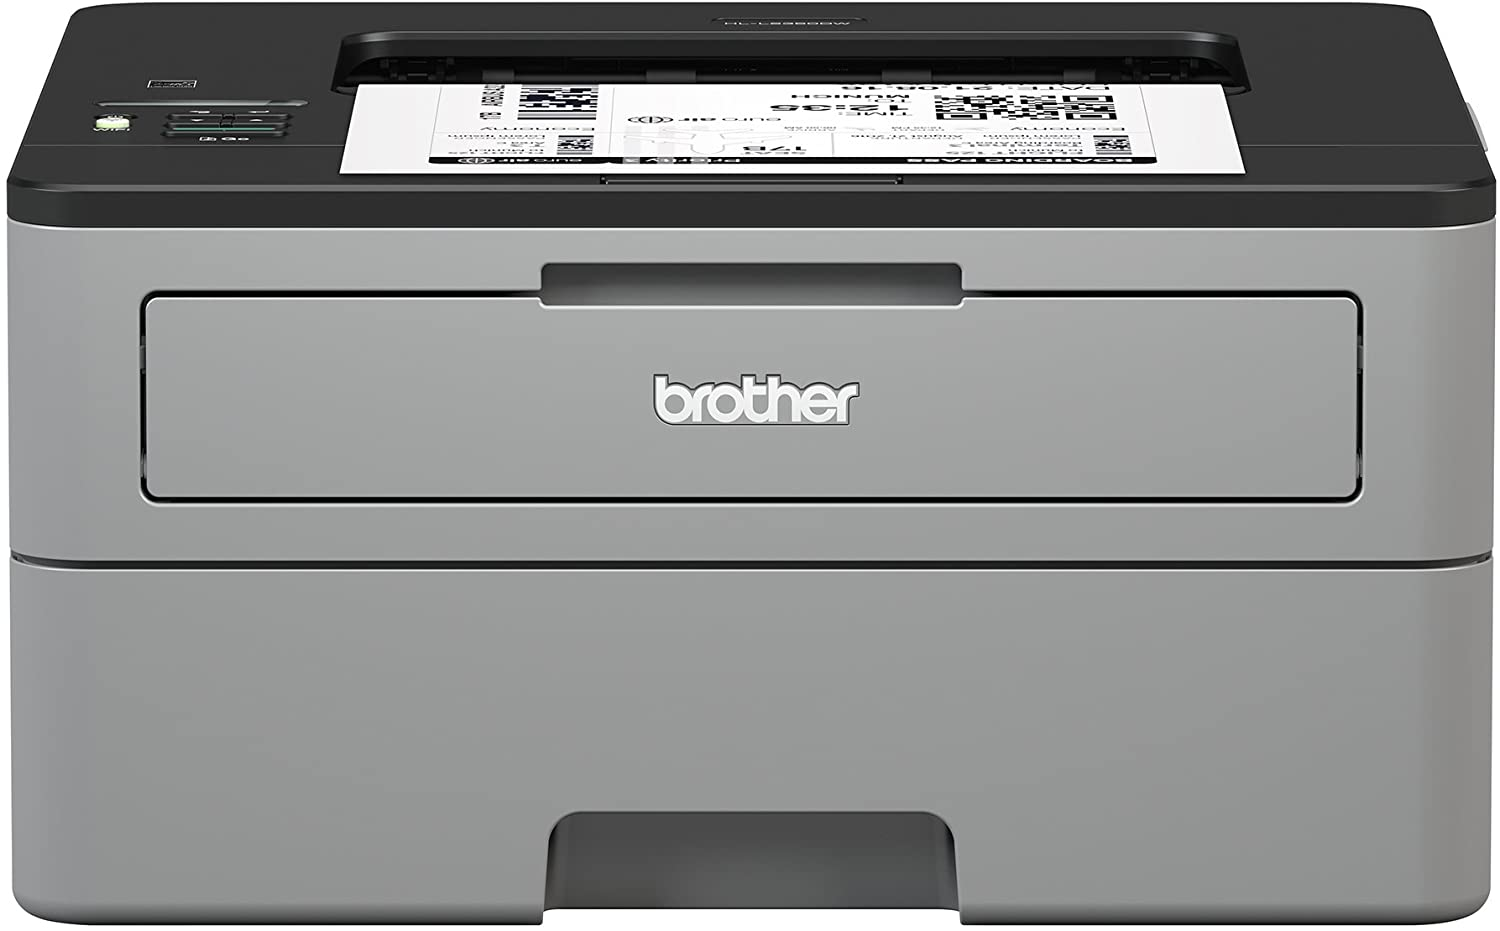 Brother Compact Monochrome Laser Printer, HL-L2350DW, Wireless Printing, Duplex Two-Sided Printing,  Dash Replenishment Ready: Office Products